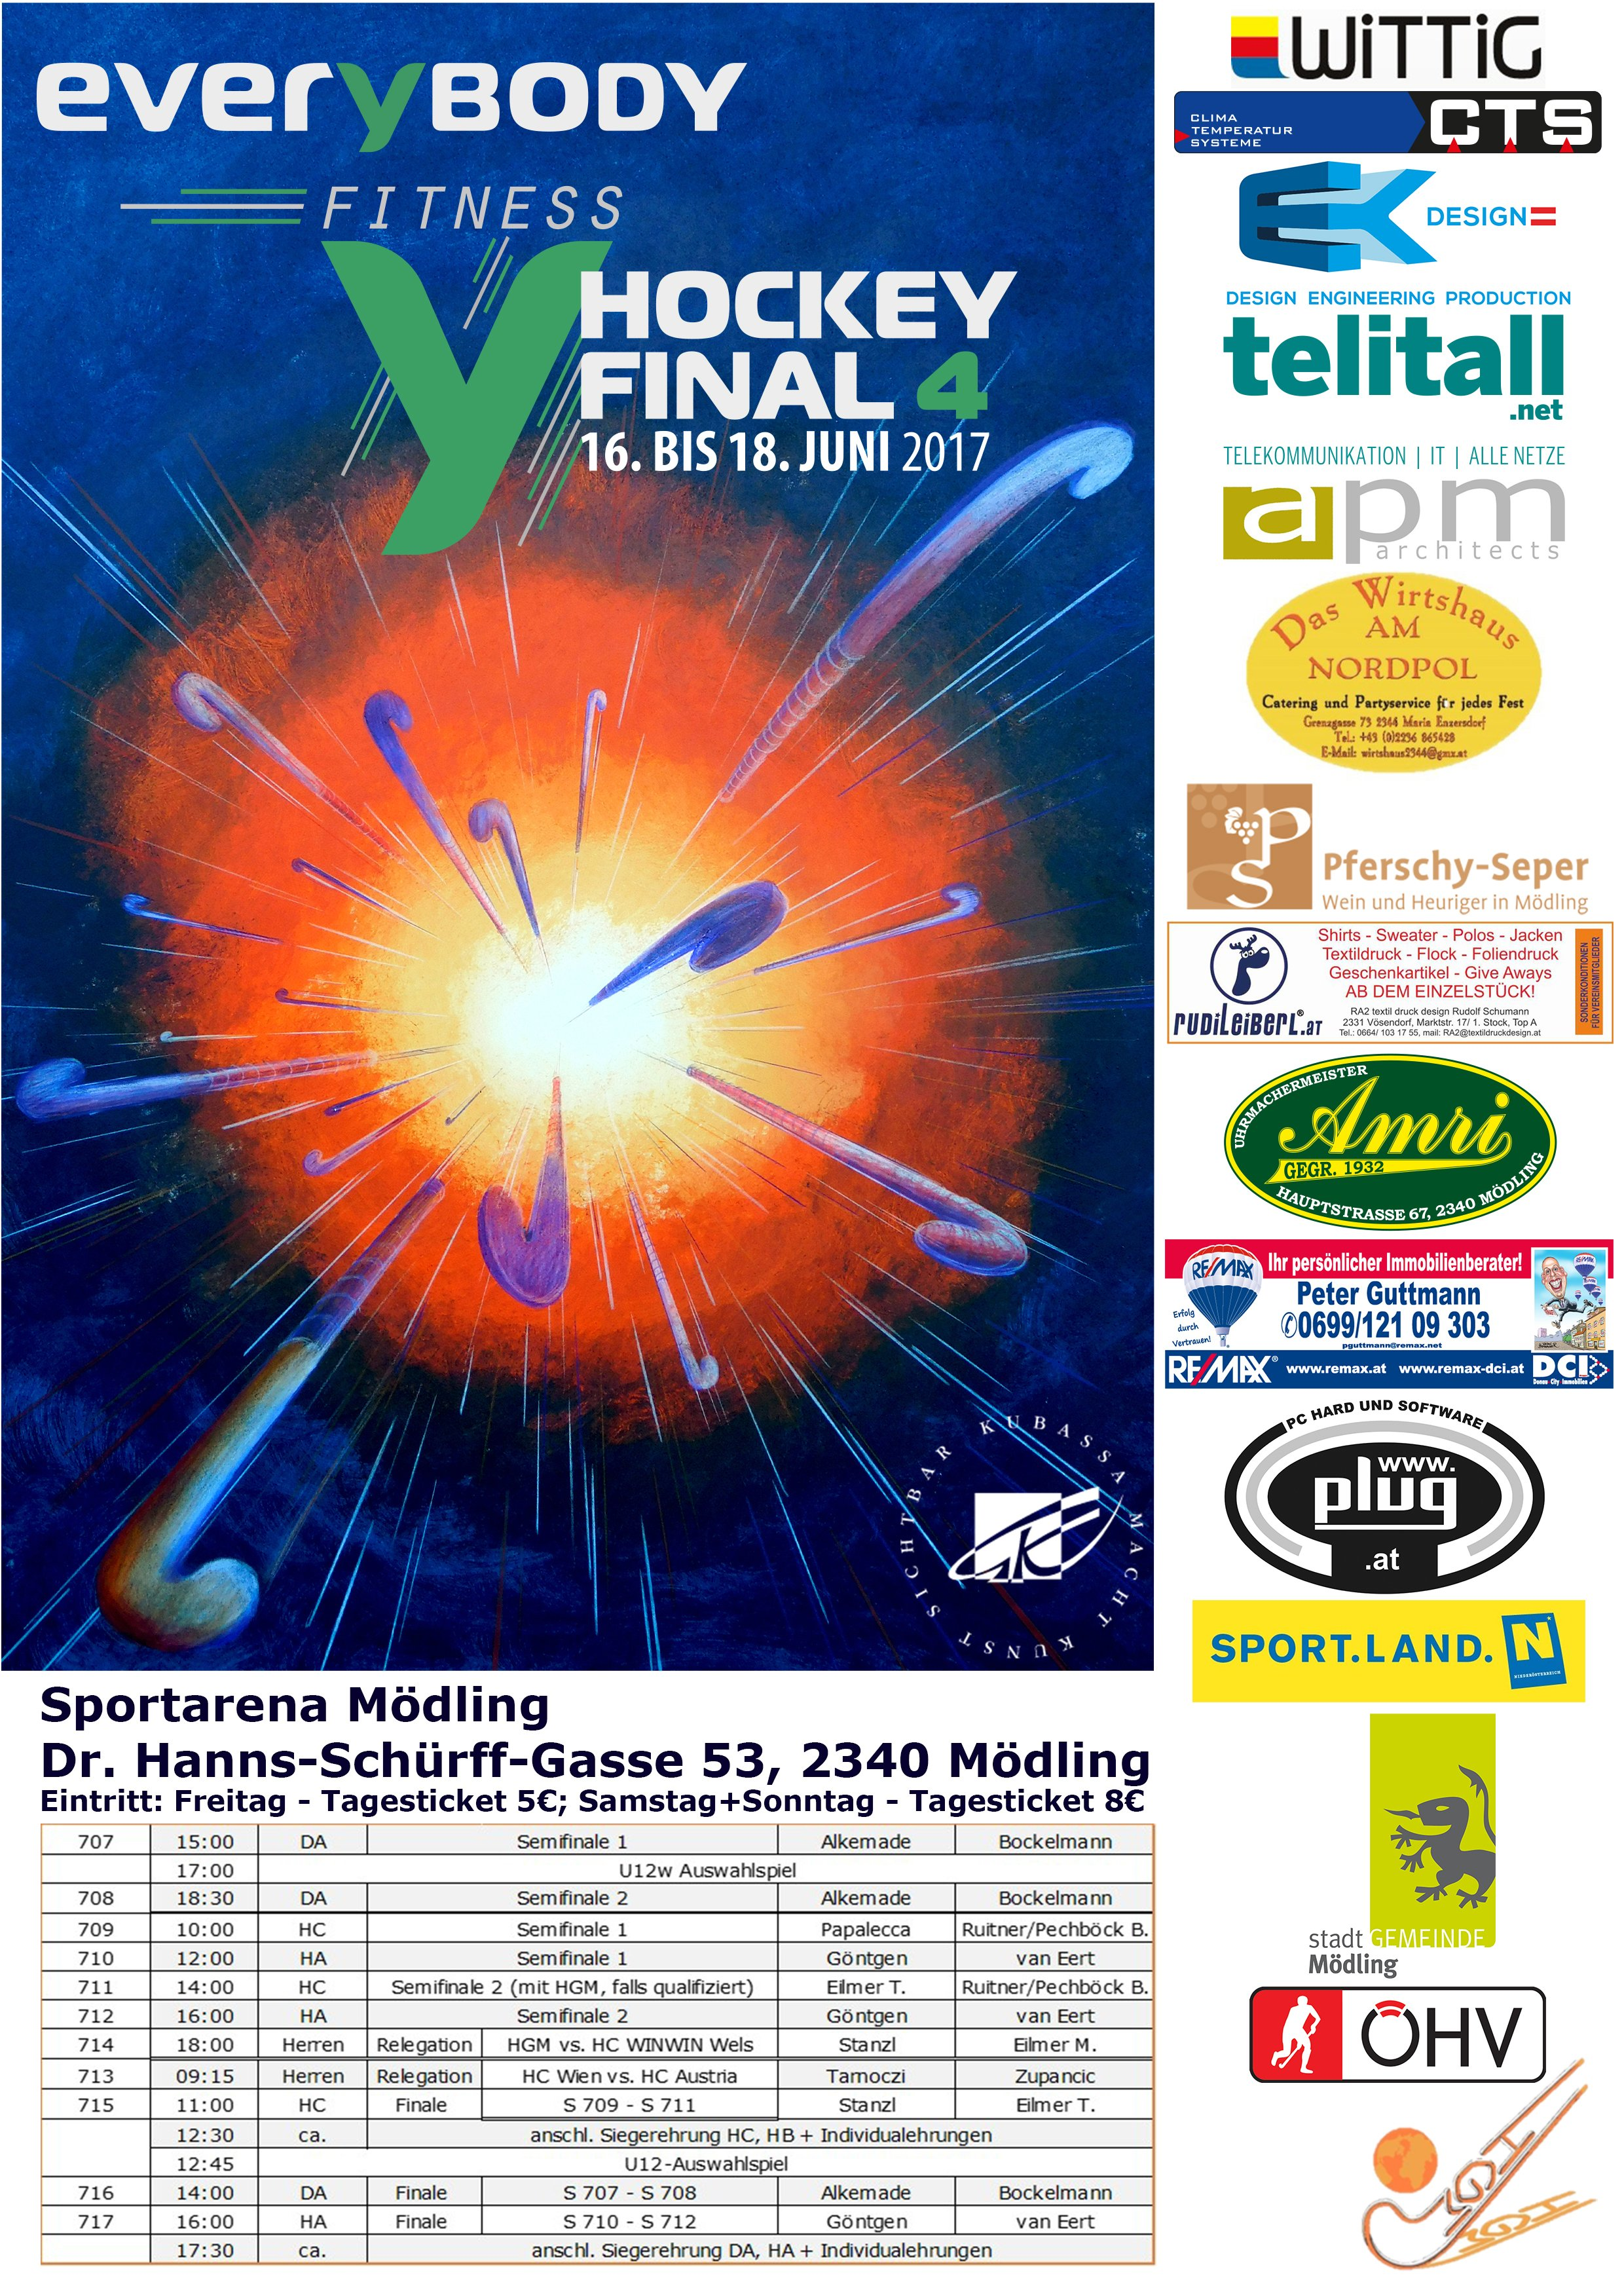 Plakat Info everybody Fitness Hockey Final 4 MÖDLING 2017.jpg